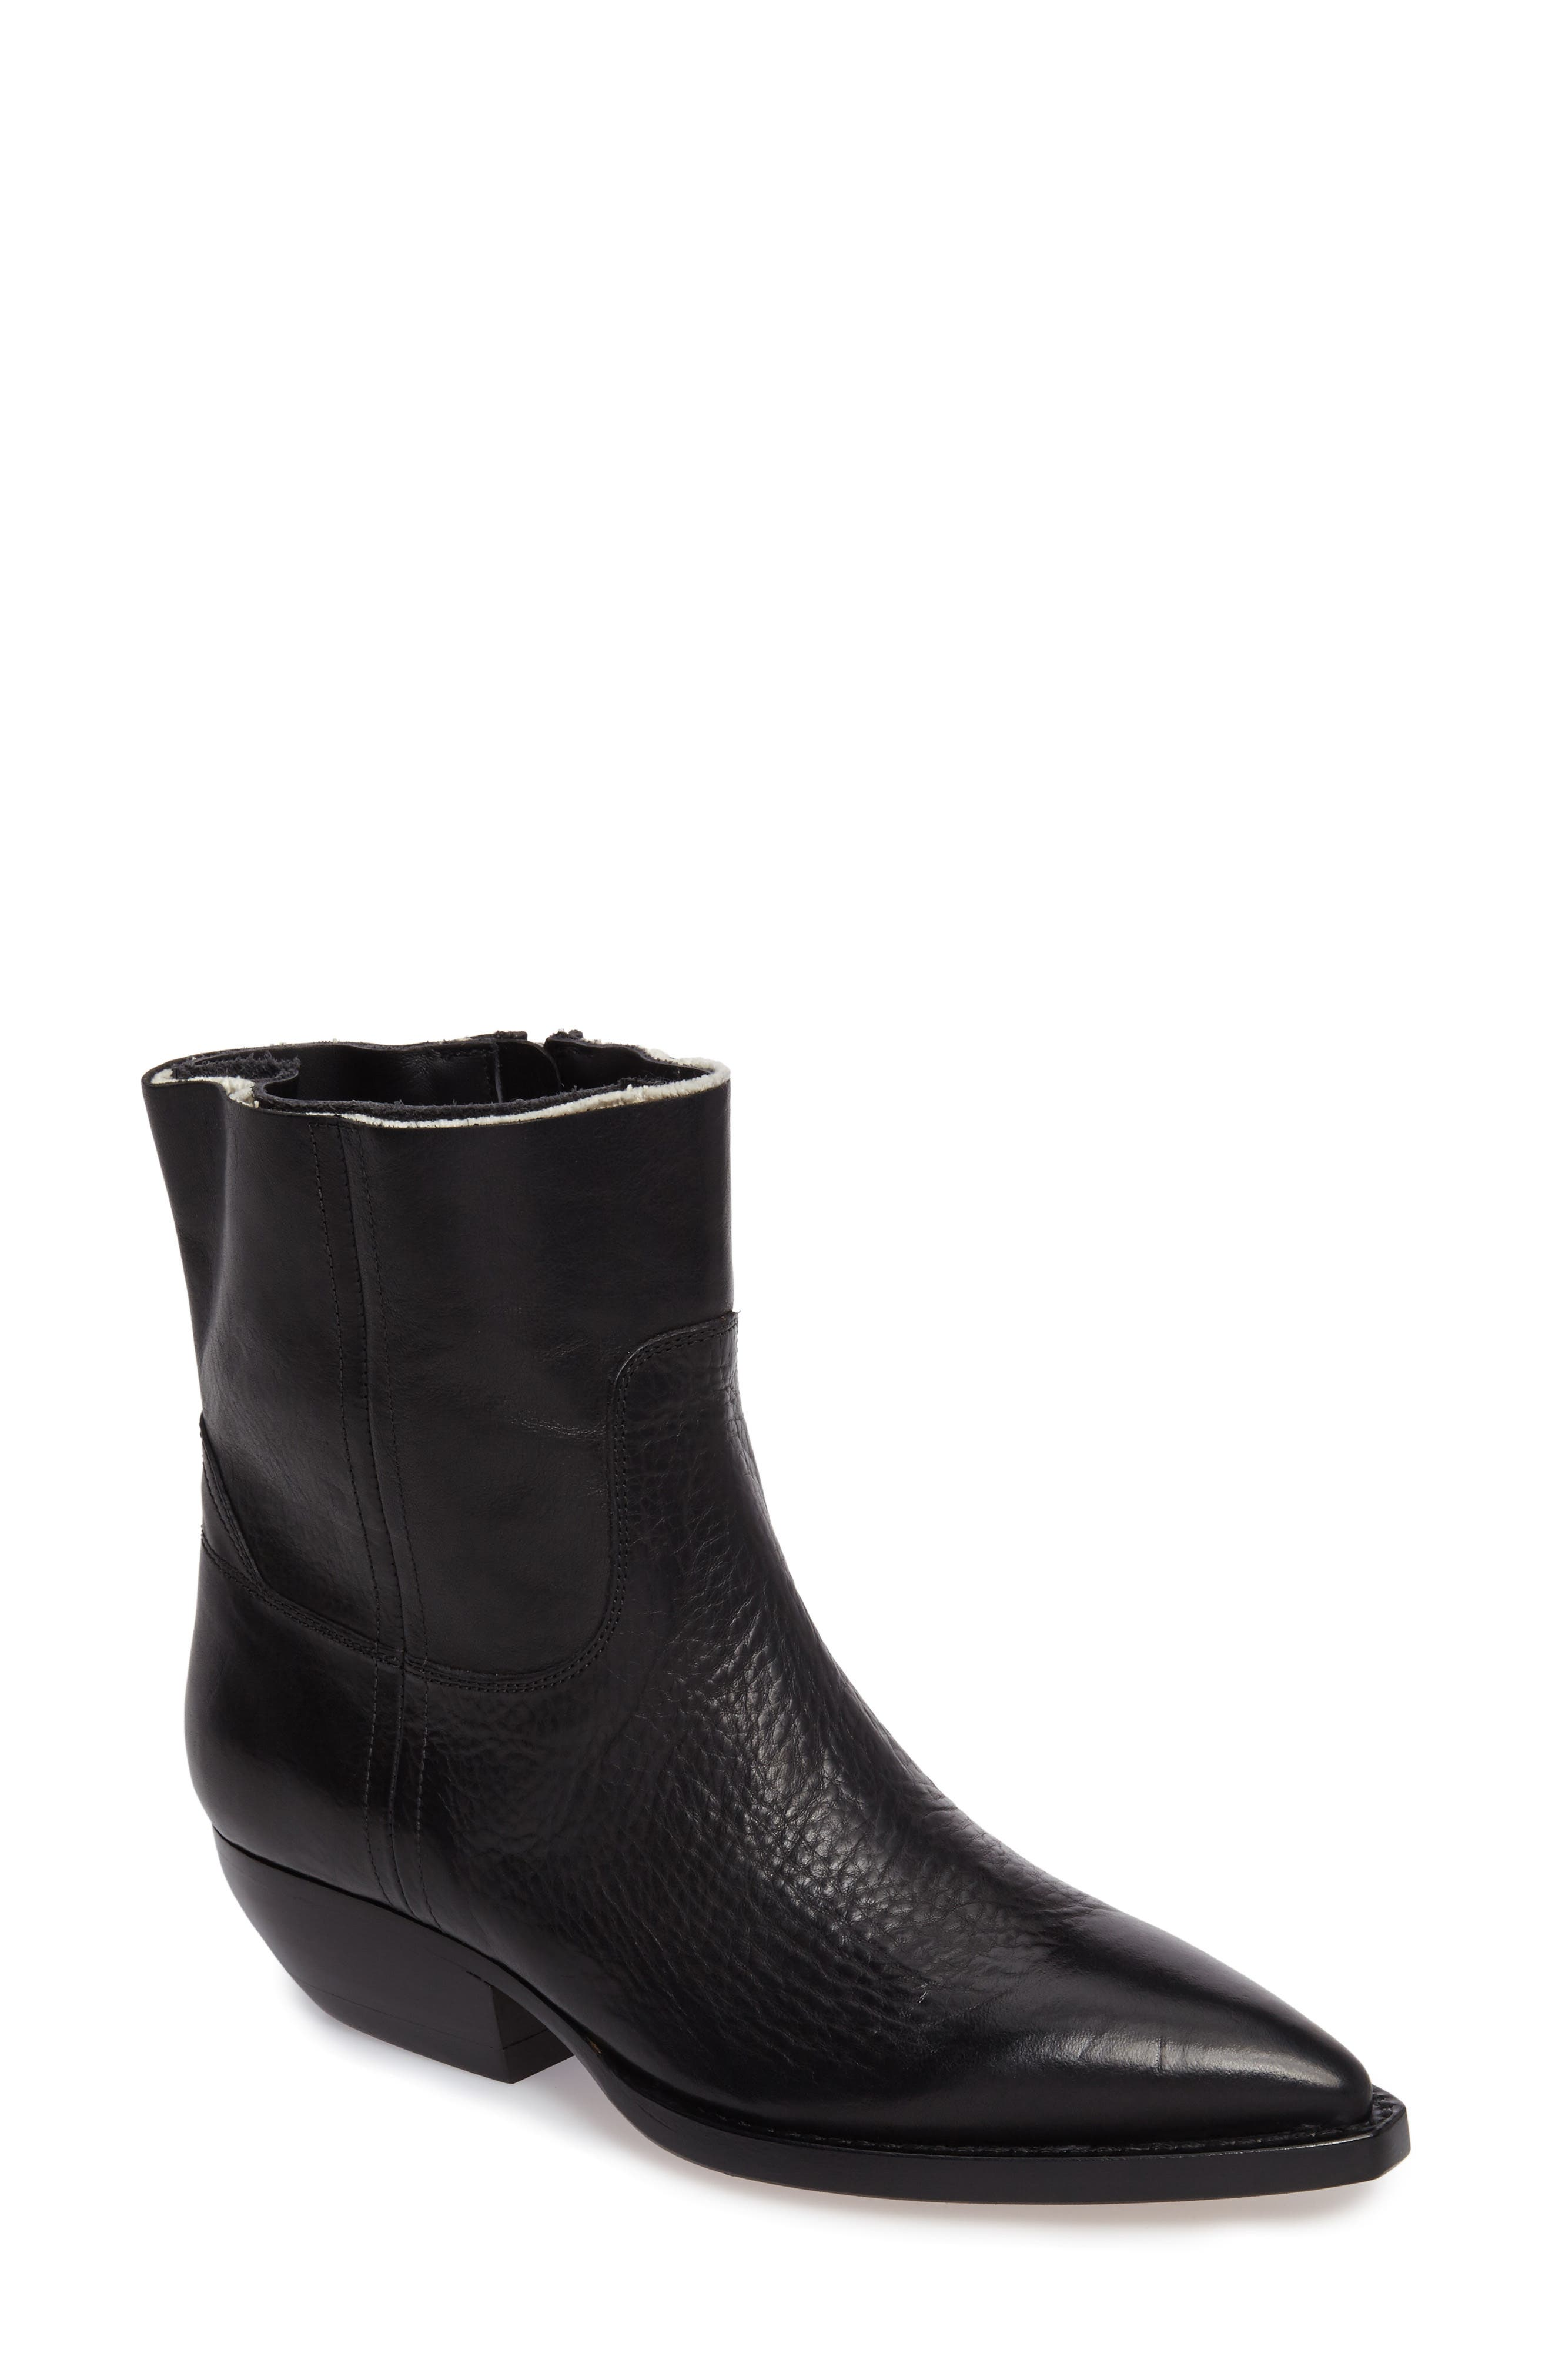 Theo Eli Western Bootie,                             Main thumbnail 1, color,                             Black